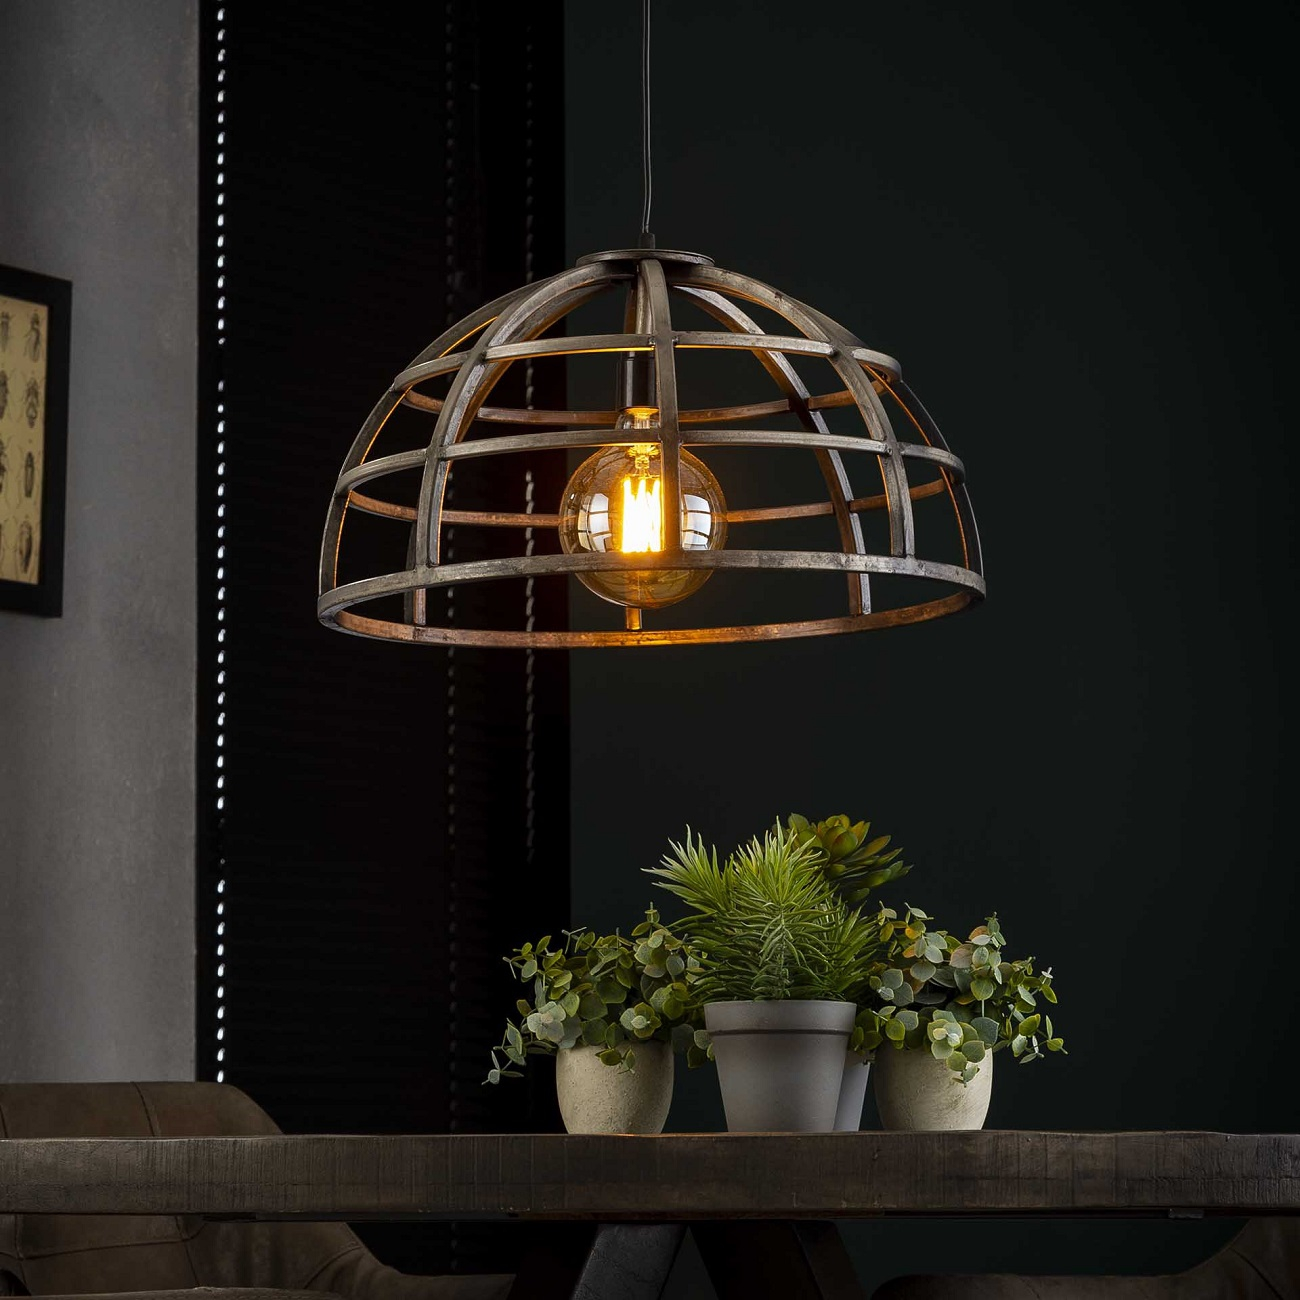 Hanglamp Dome 1xØ50 in Oud zilver